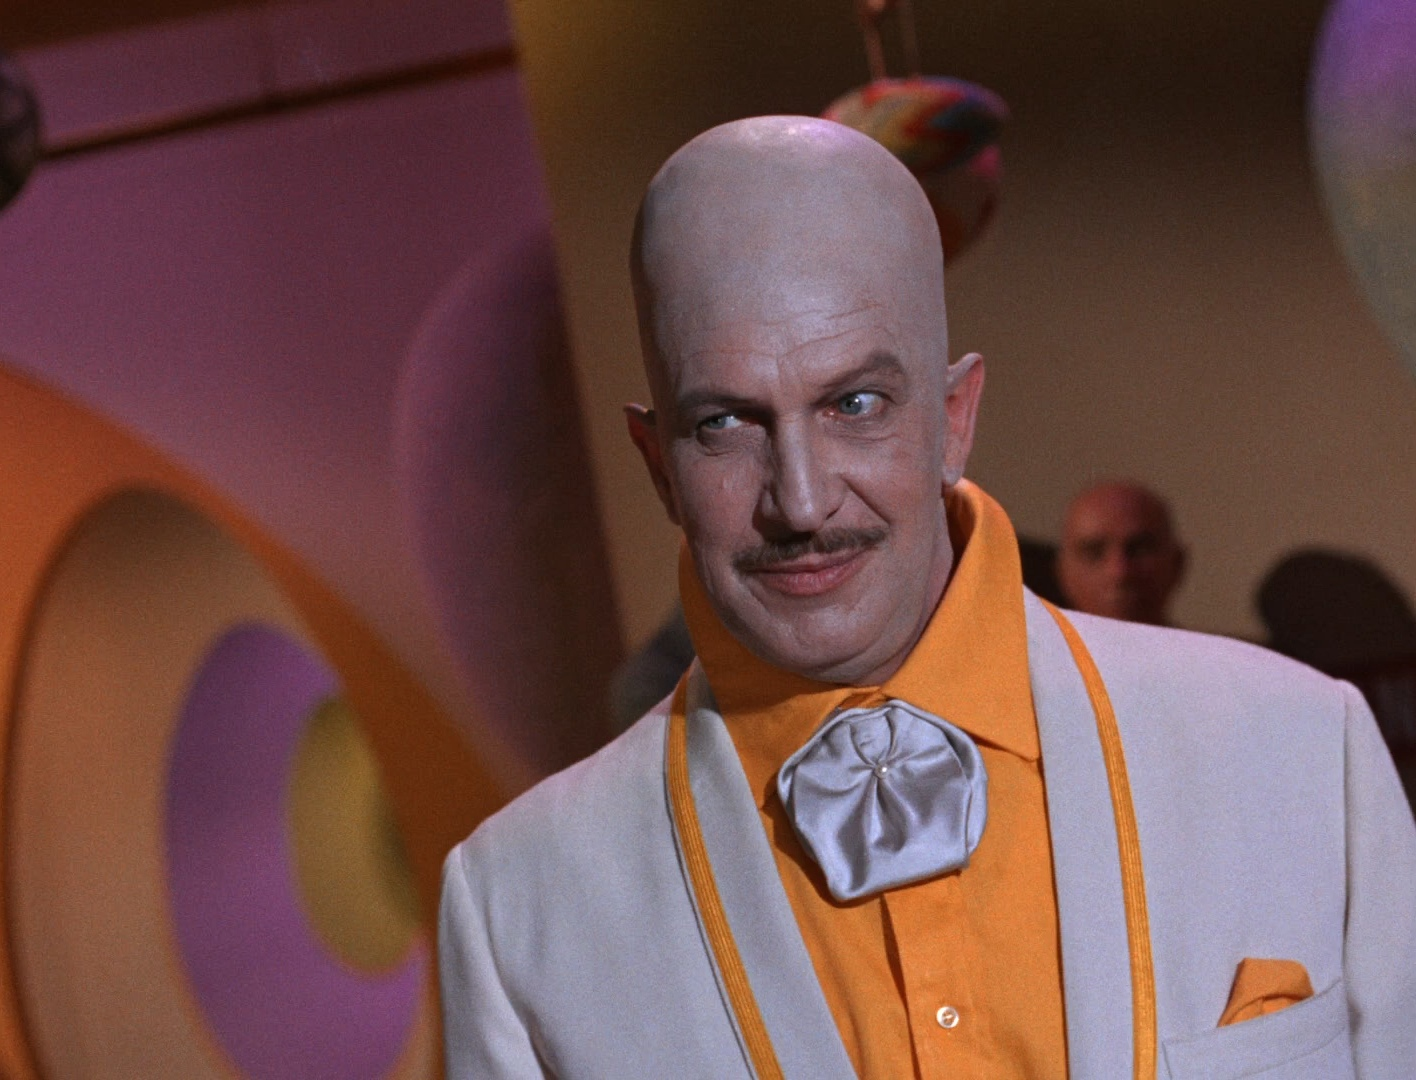 Egghead (Batman 1966 TV Series)